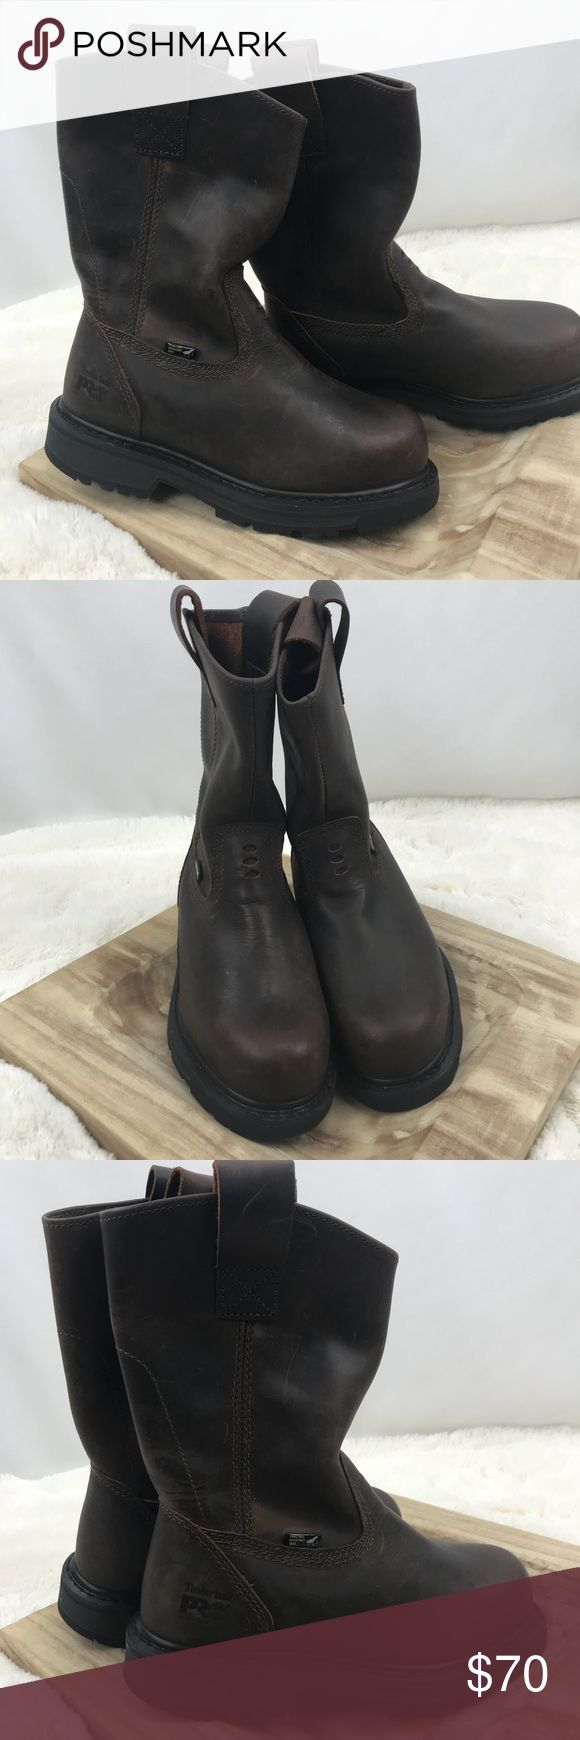 Timberland PRO Leather Boots Work Safety Steel Toe New without tags. Boots do have some small scratch marks from storage not noticeable. Timberland Shoes Boots